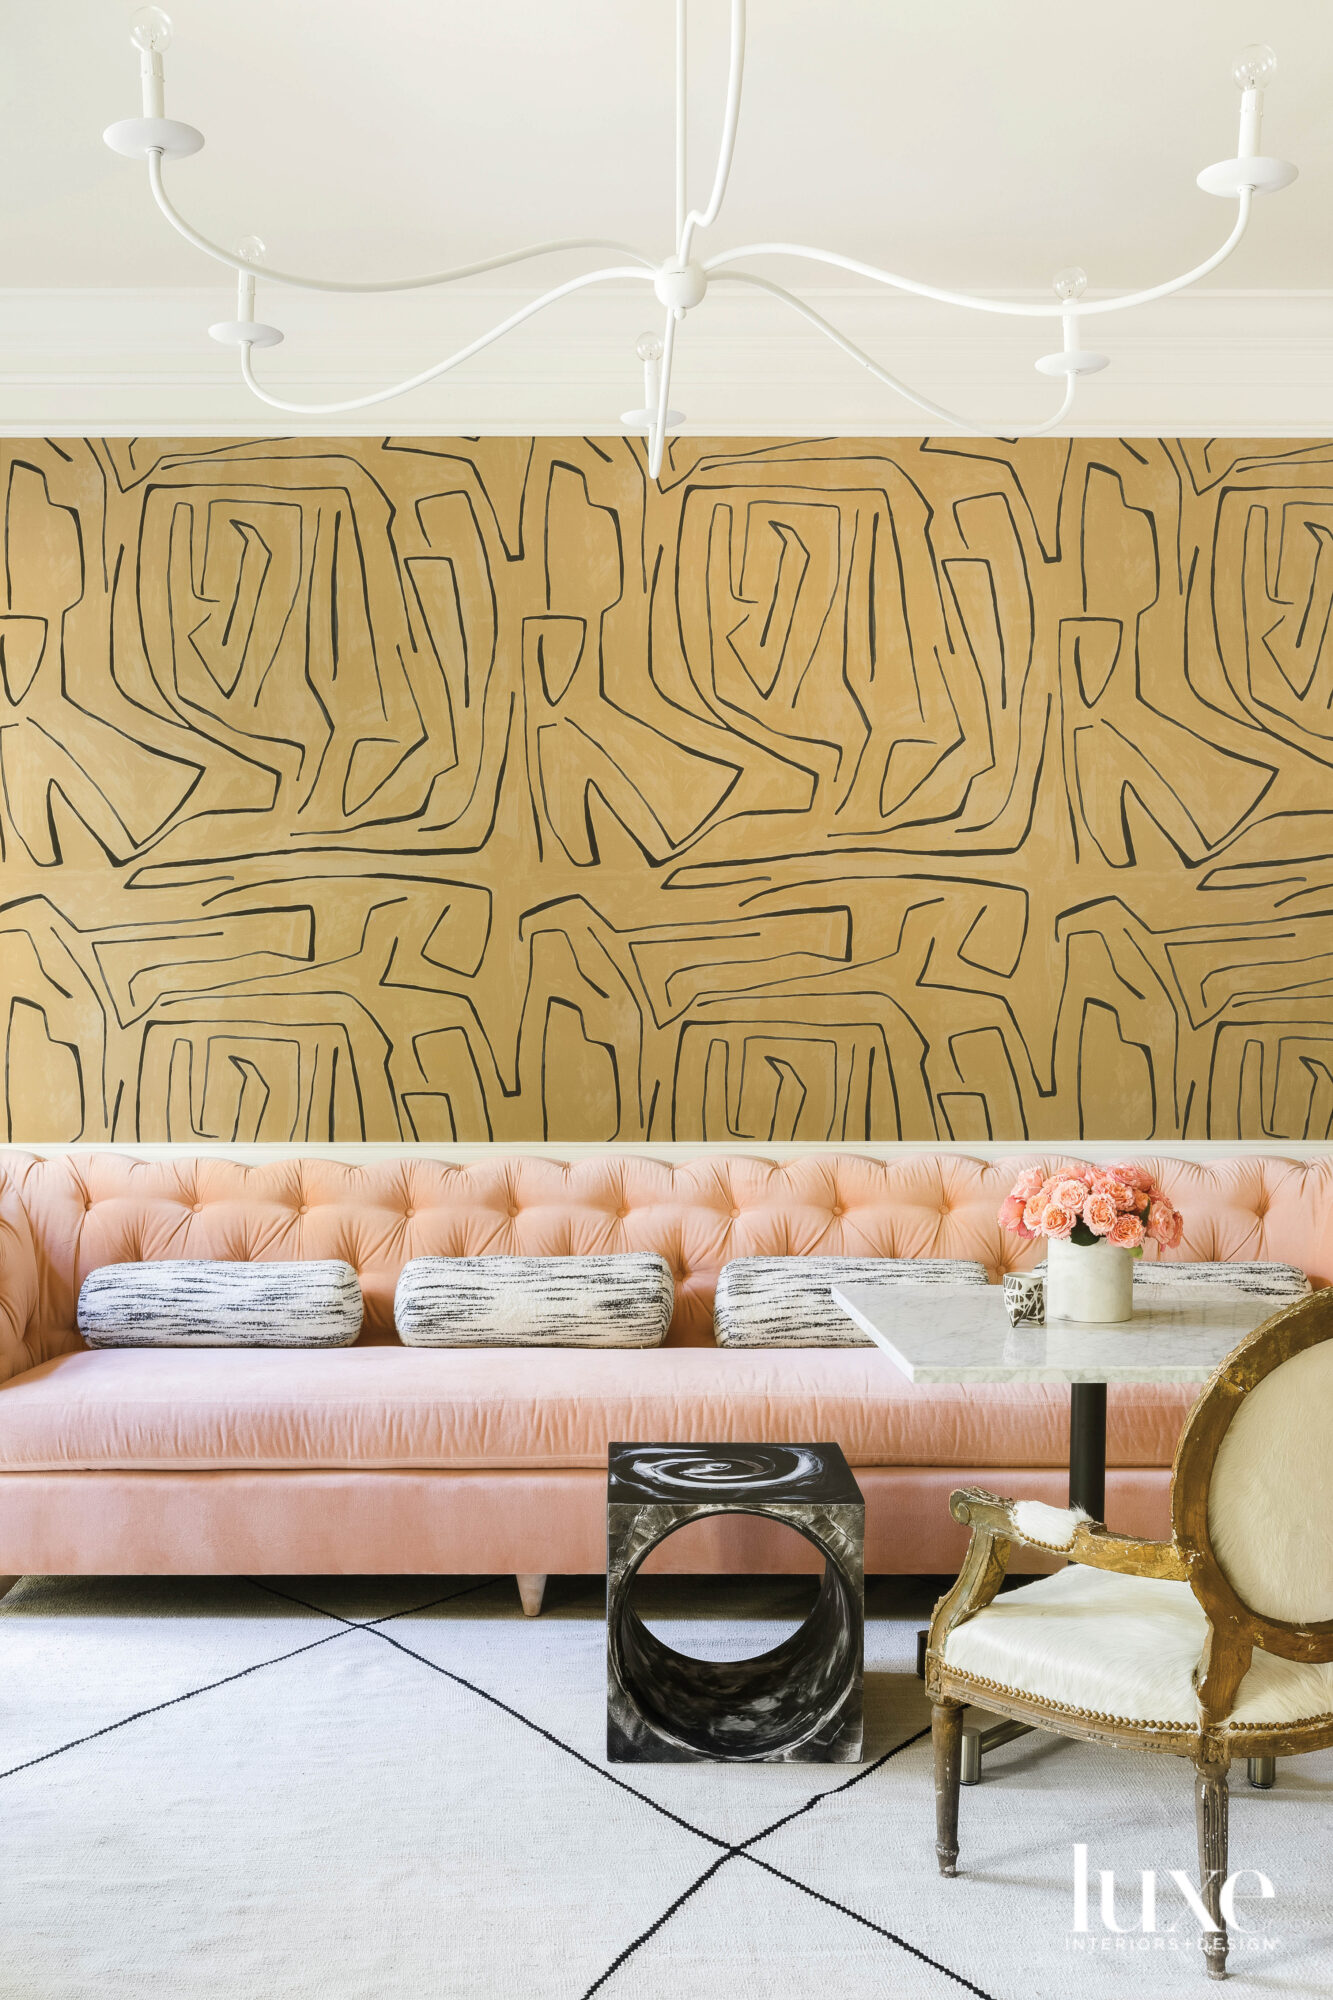 Tufted peach velvet banquette with...